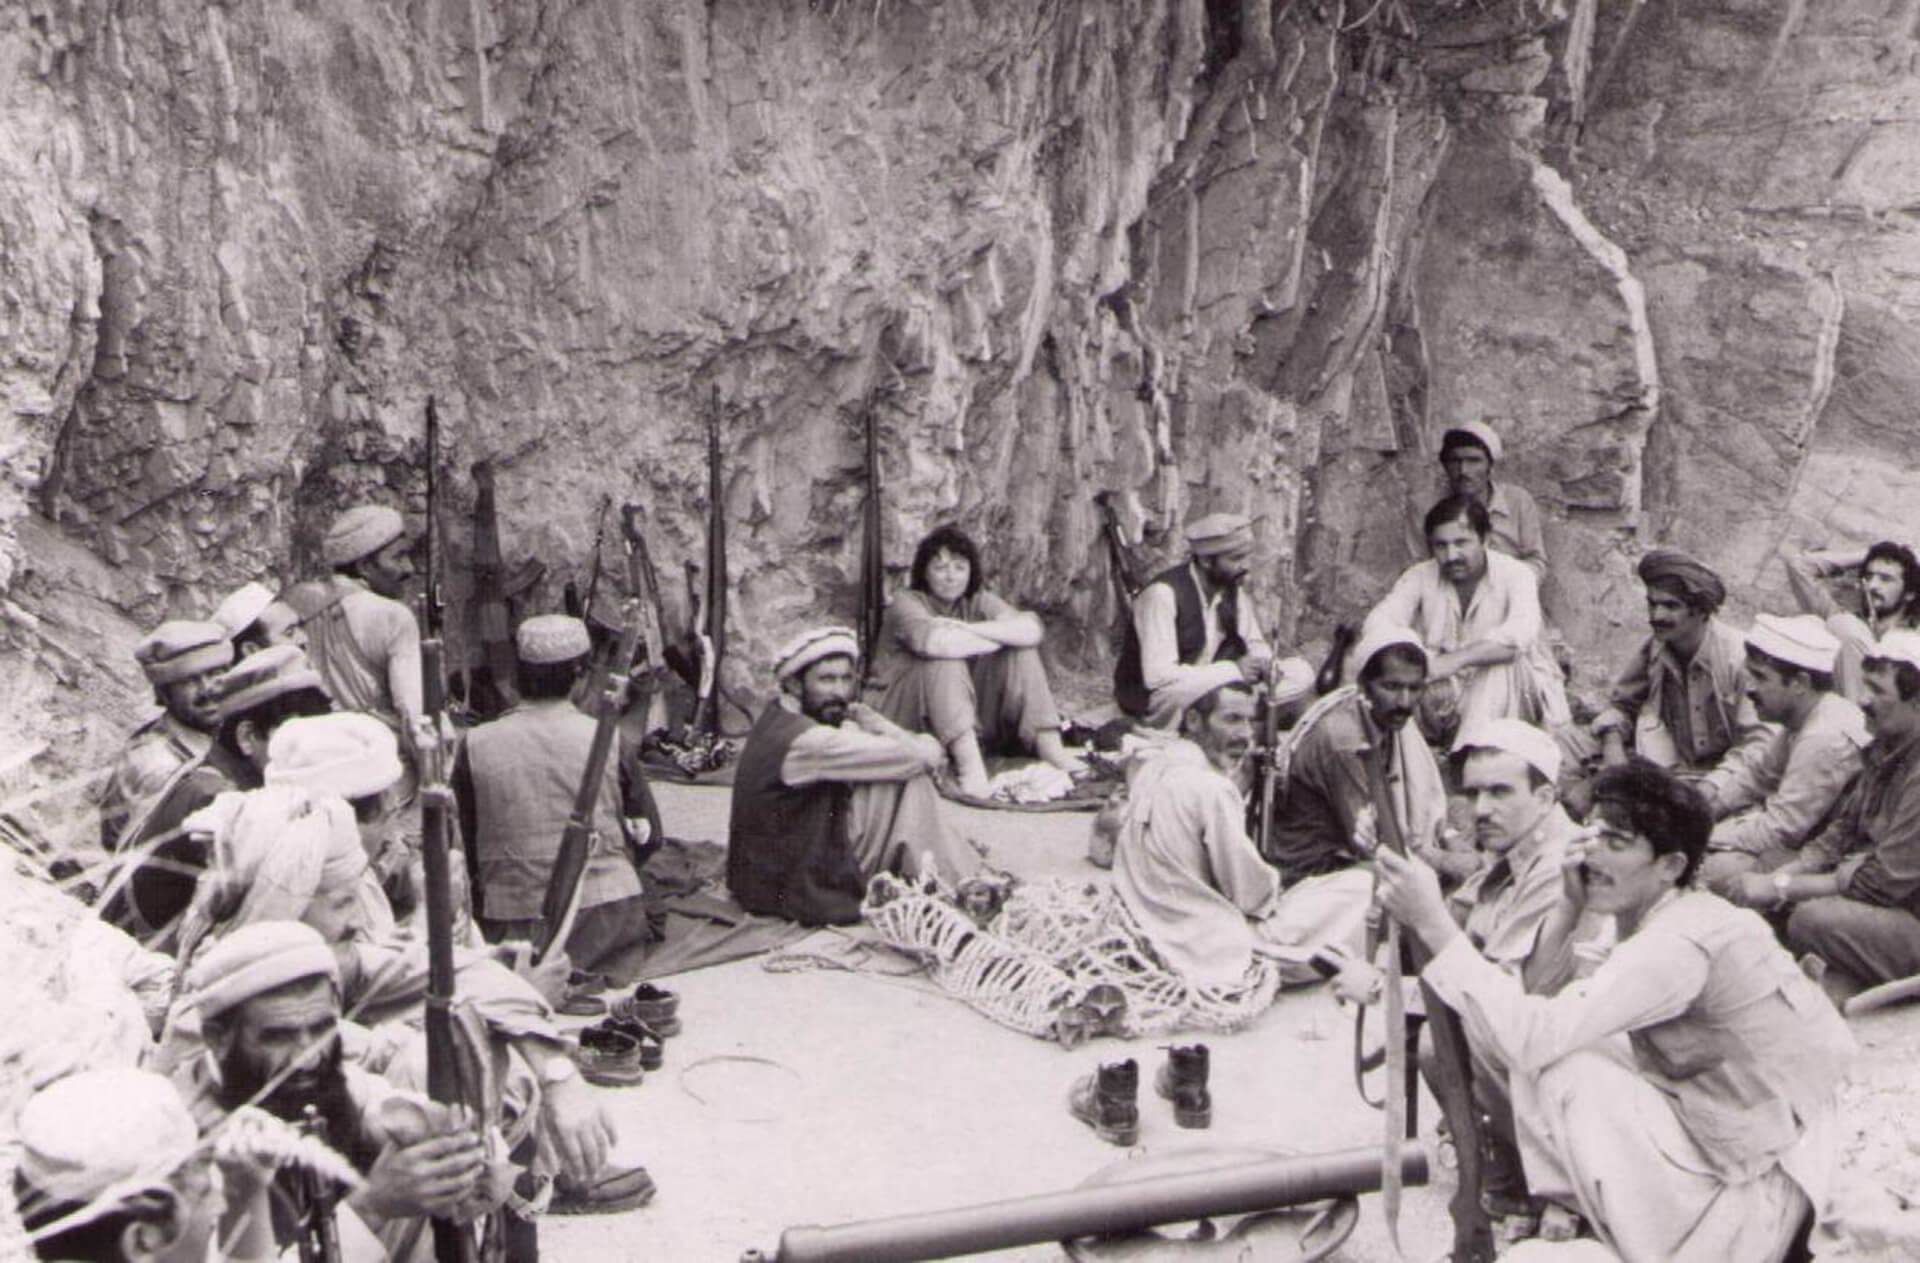 PHOTO: Jan (center) traveling with Afghan mujahideen.